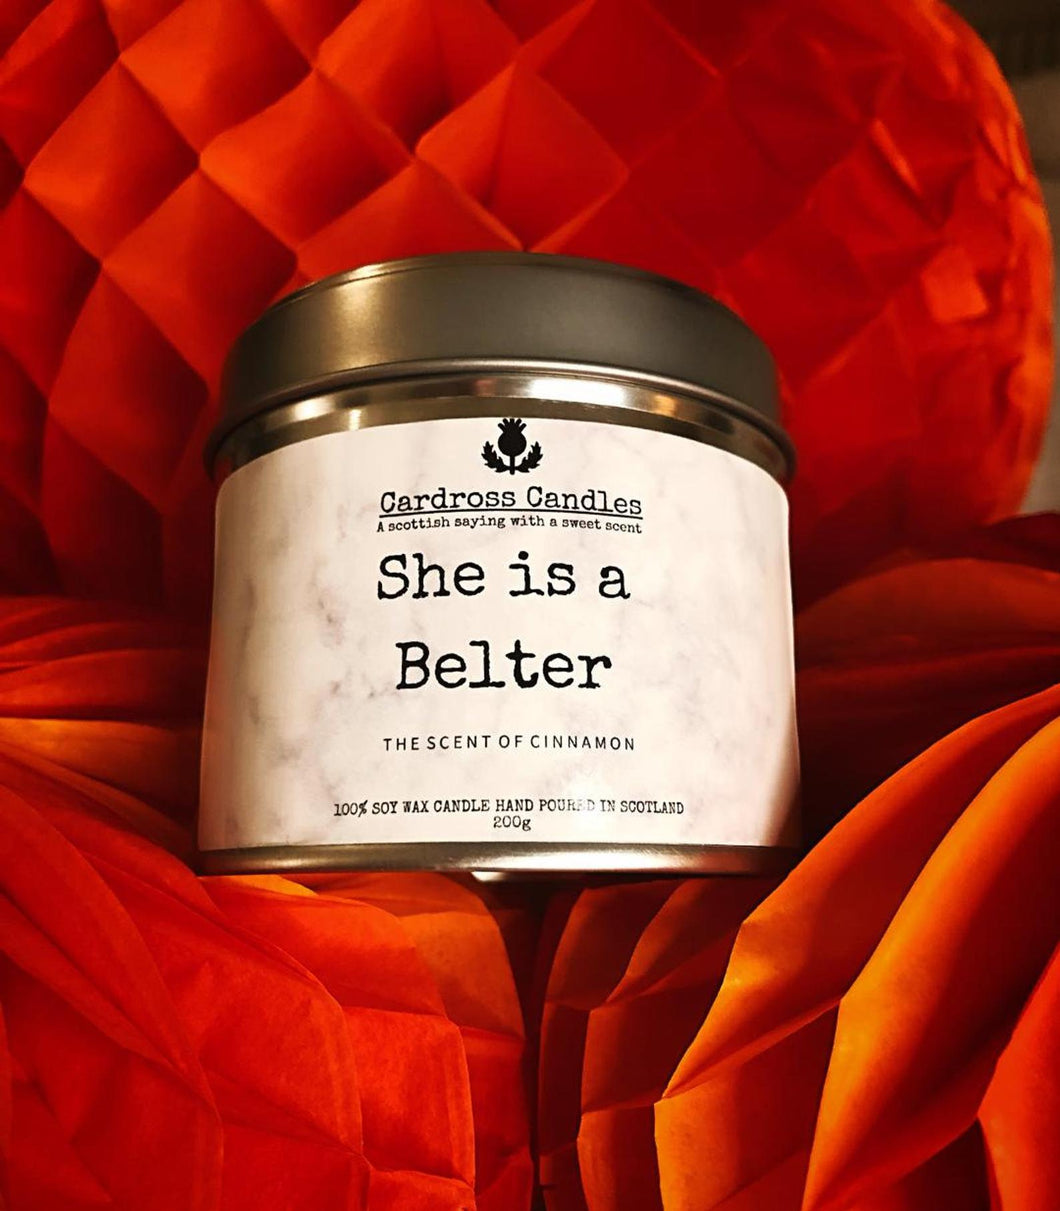 She is a Belter - Cardross Candles